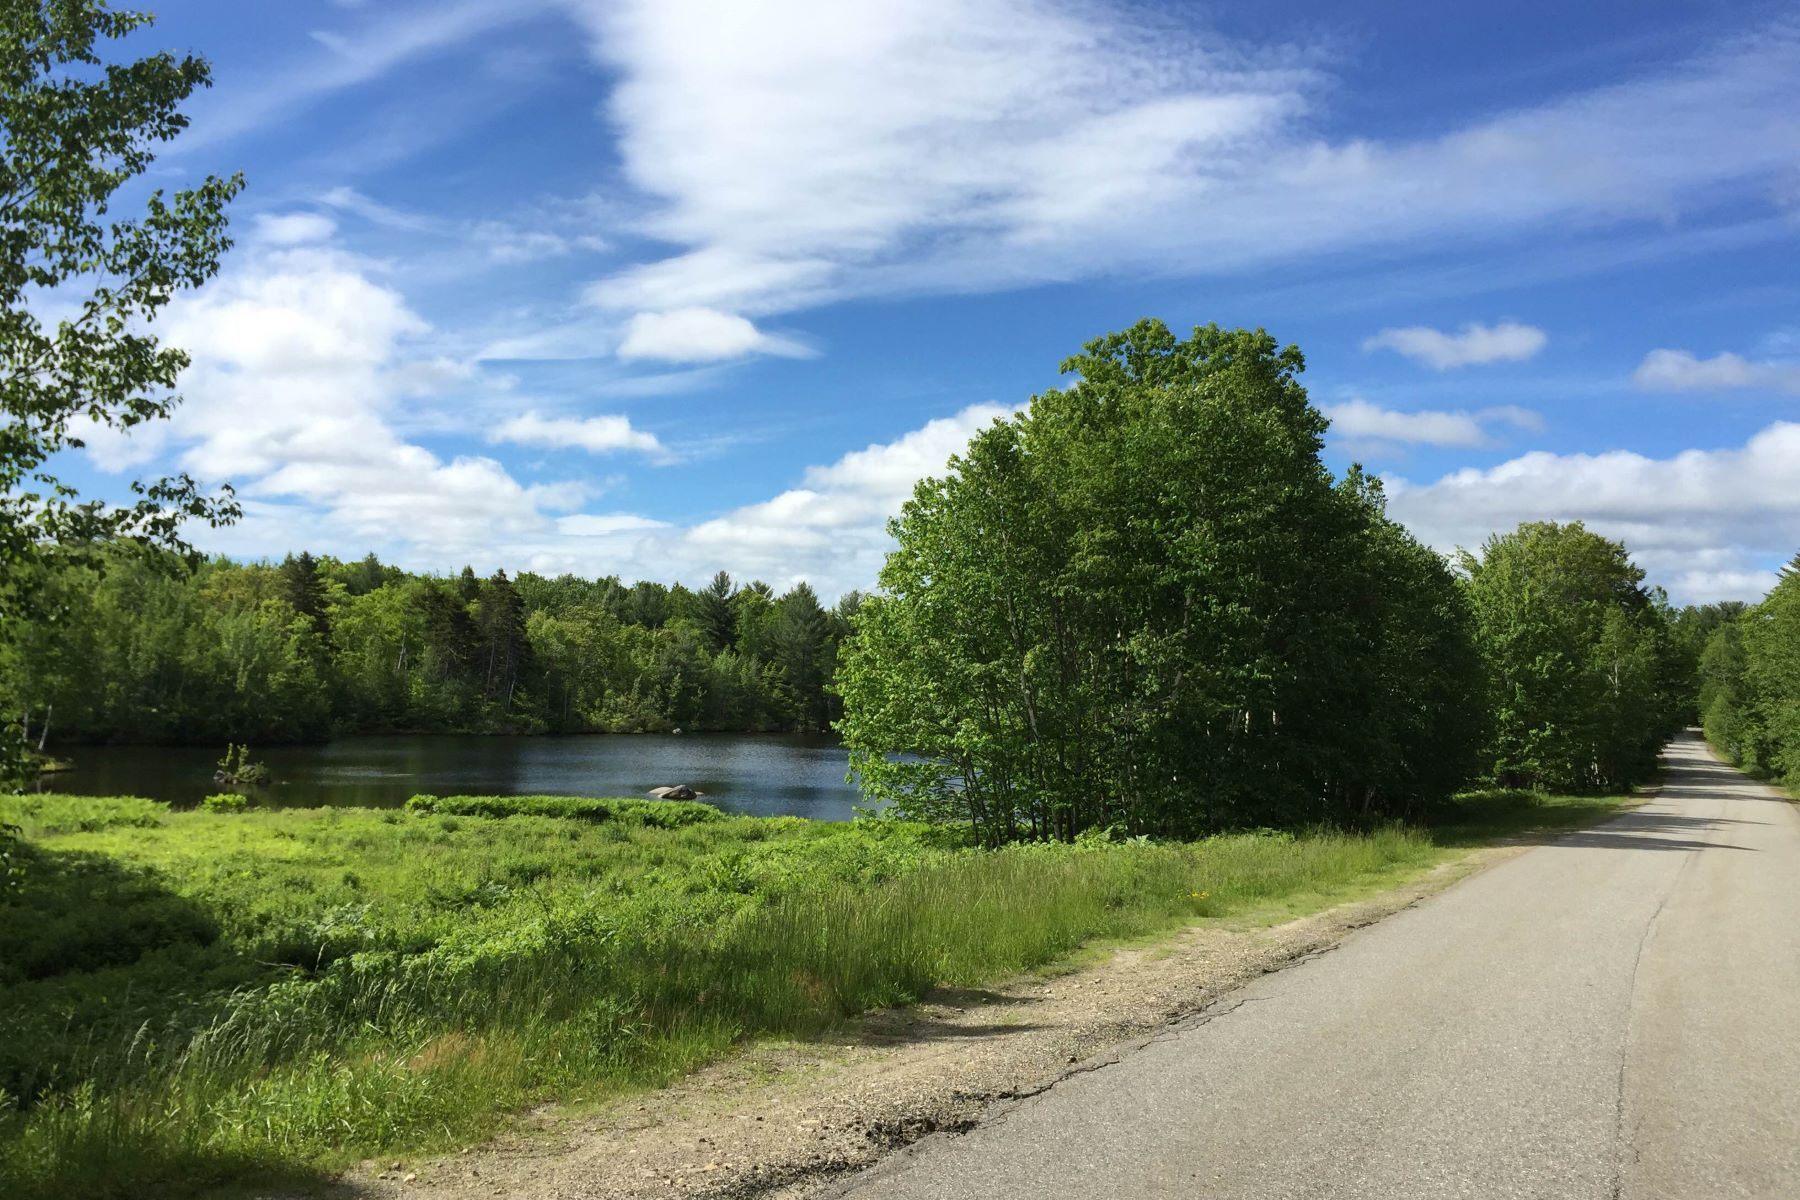 Land for Sale at Reflection Pond Reflection Pond Rockport, Maine 04856 United States